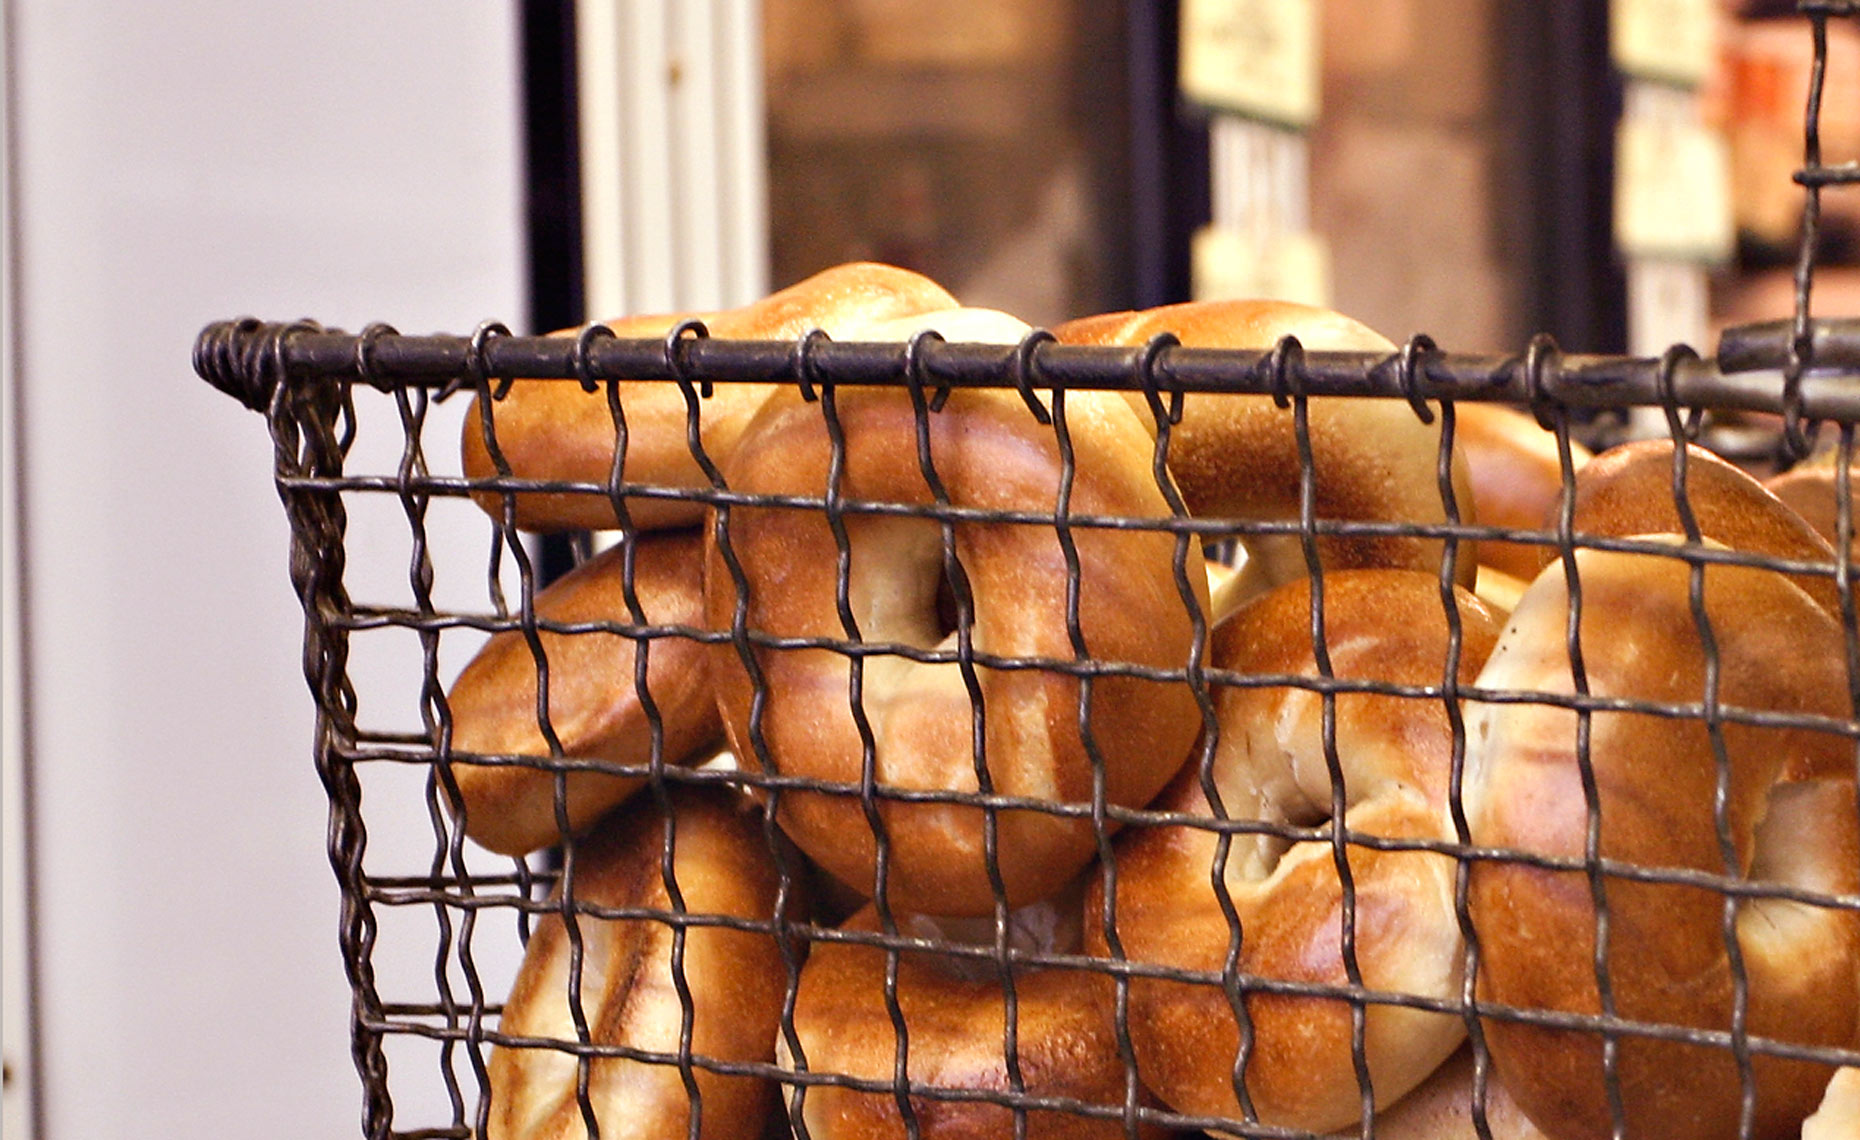 Bagels in wire basket